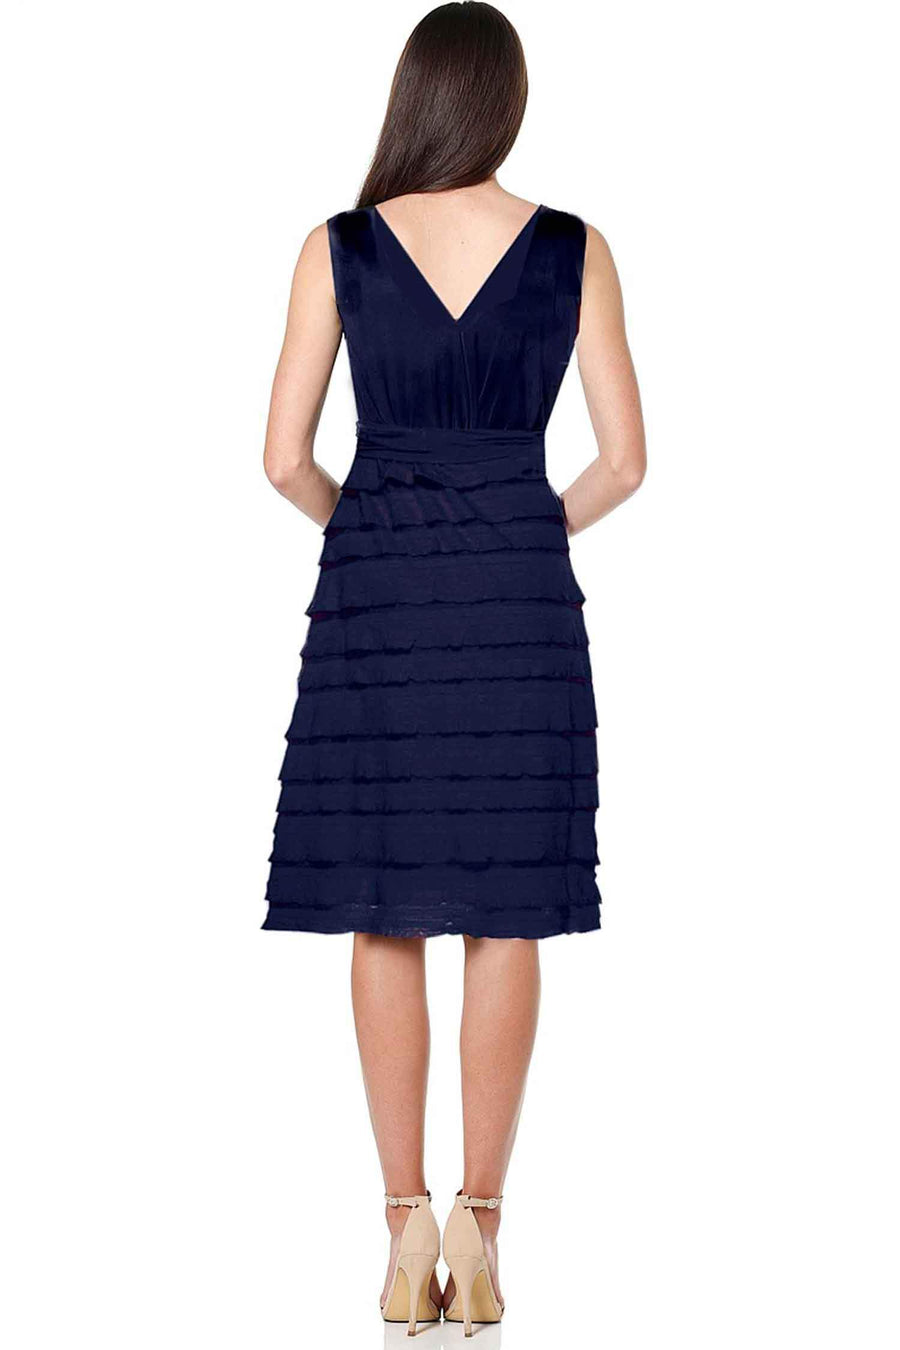 Shop Online V-Neck Ruffle Dress in Navy by Sacha Drake  Frockaholics Dresses